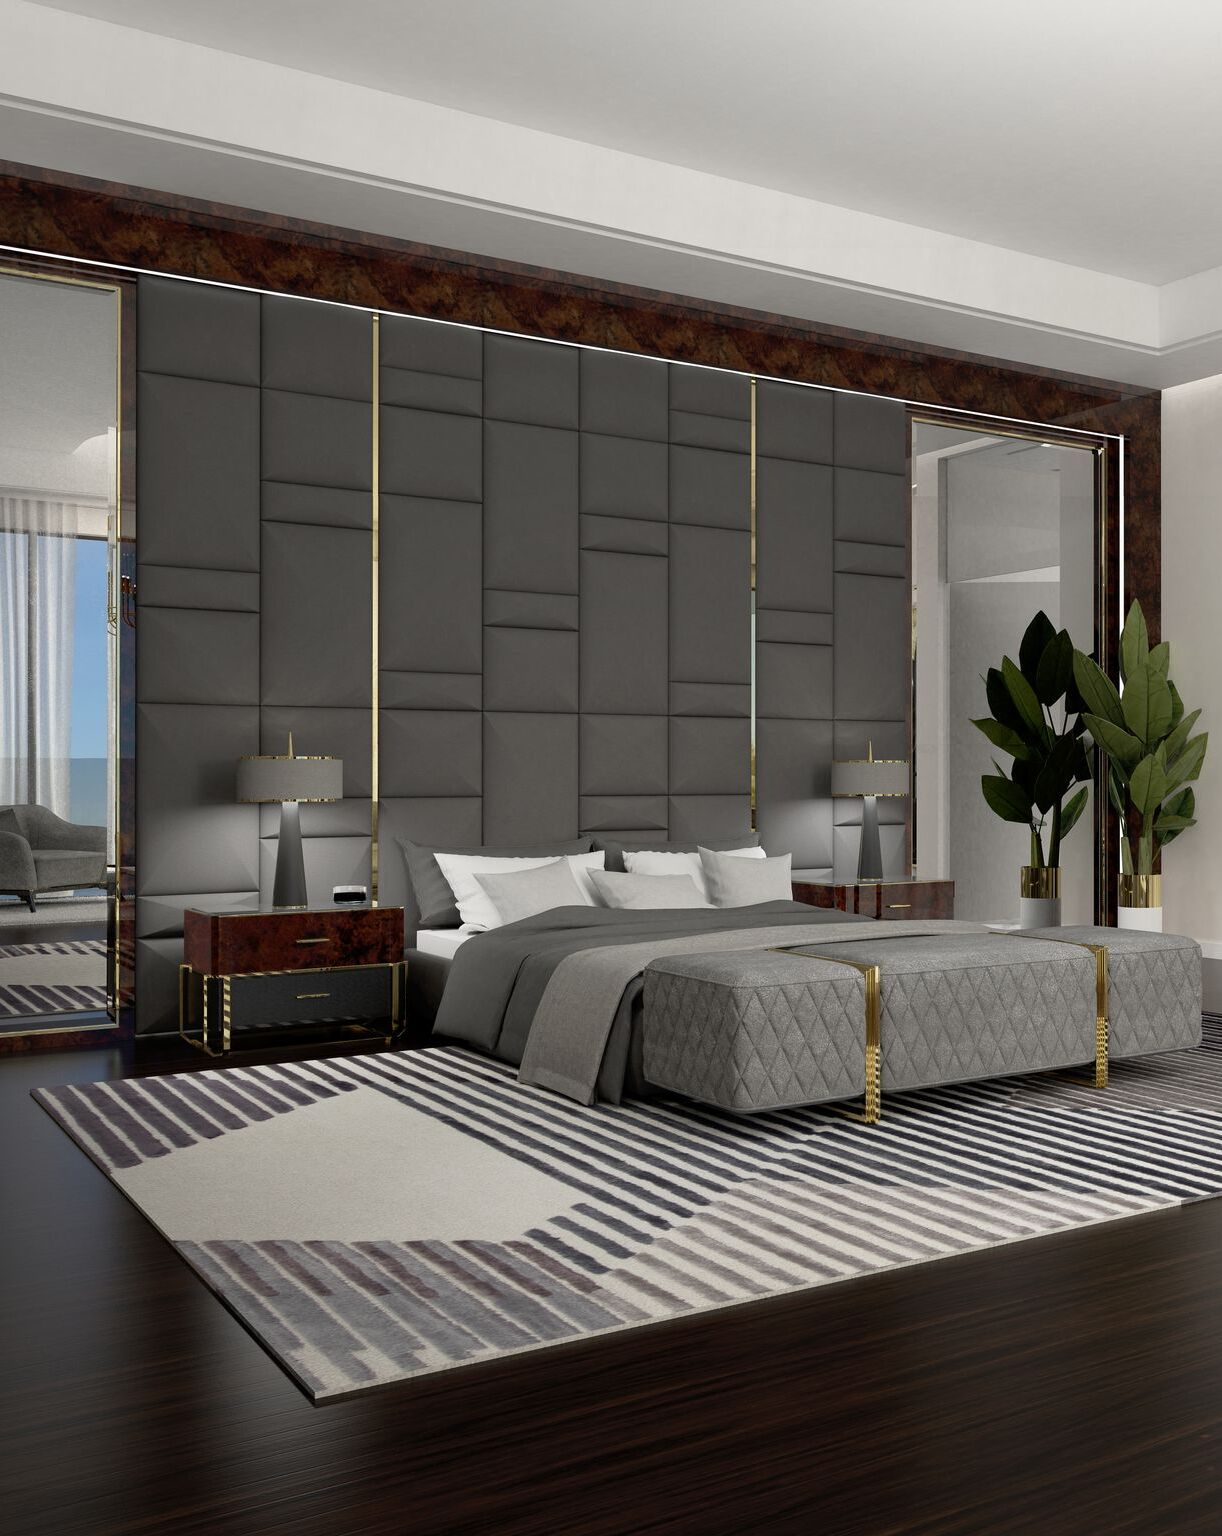 Luxury Bedroom by Rug'Society by Rug'Society